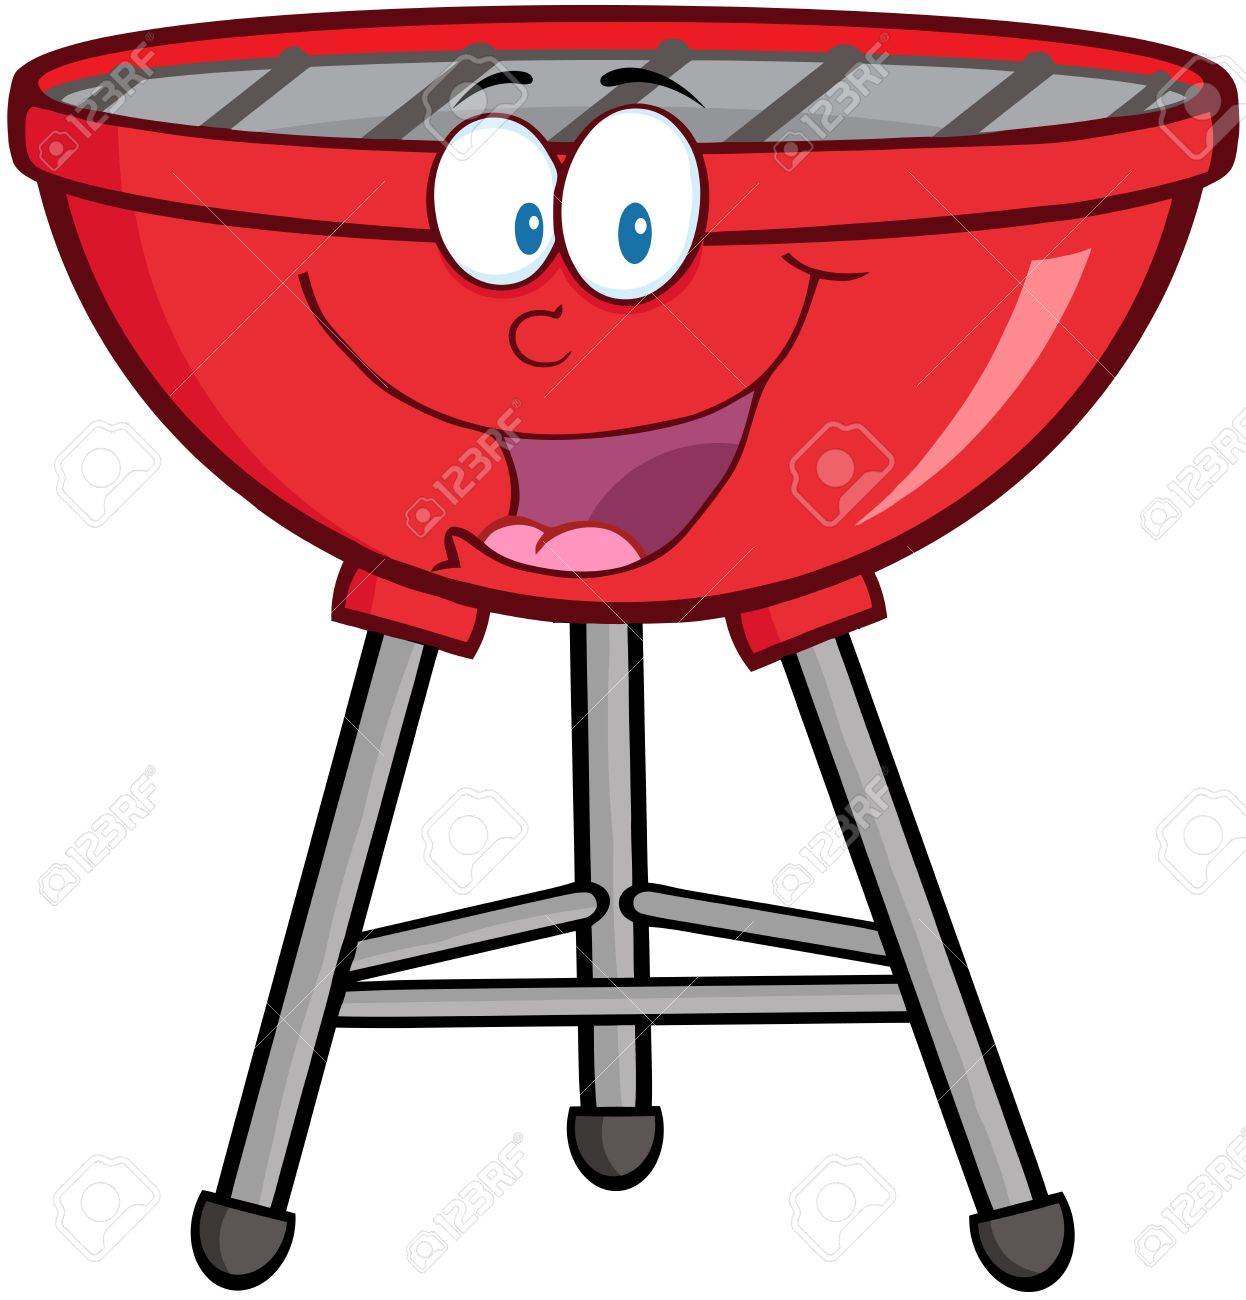 red barbecue cartoon mascot character royalty free cliparts vectors